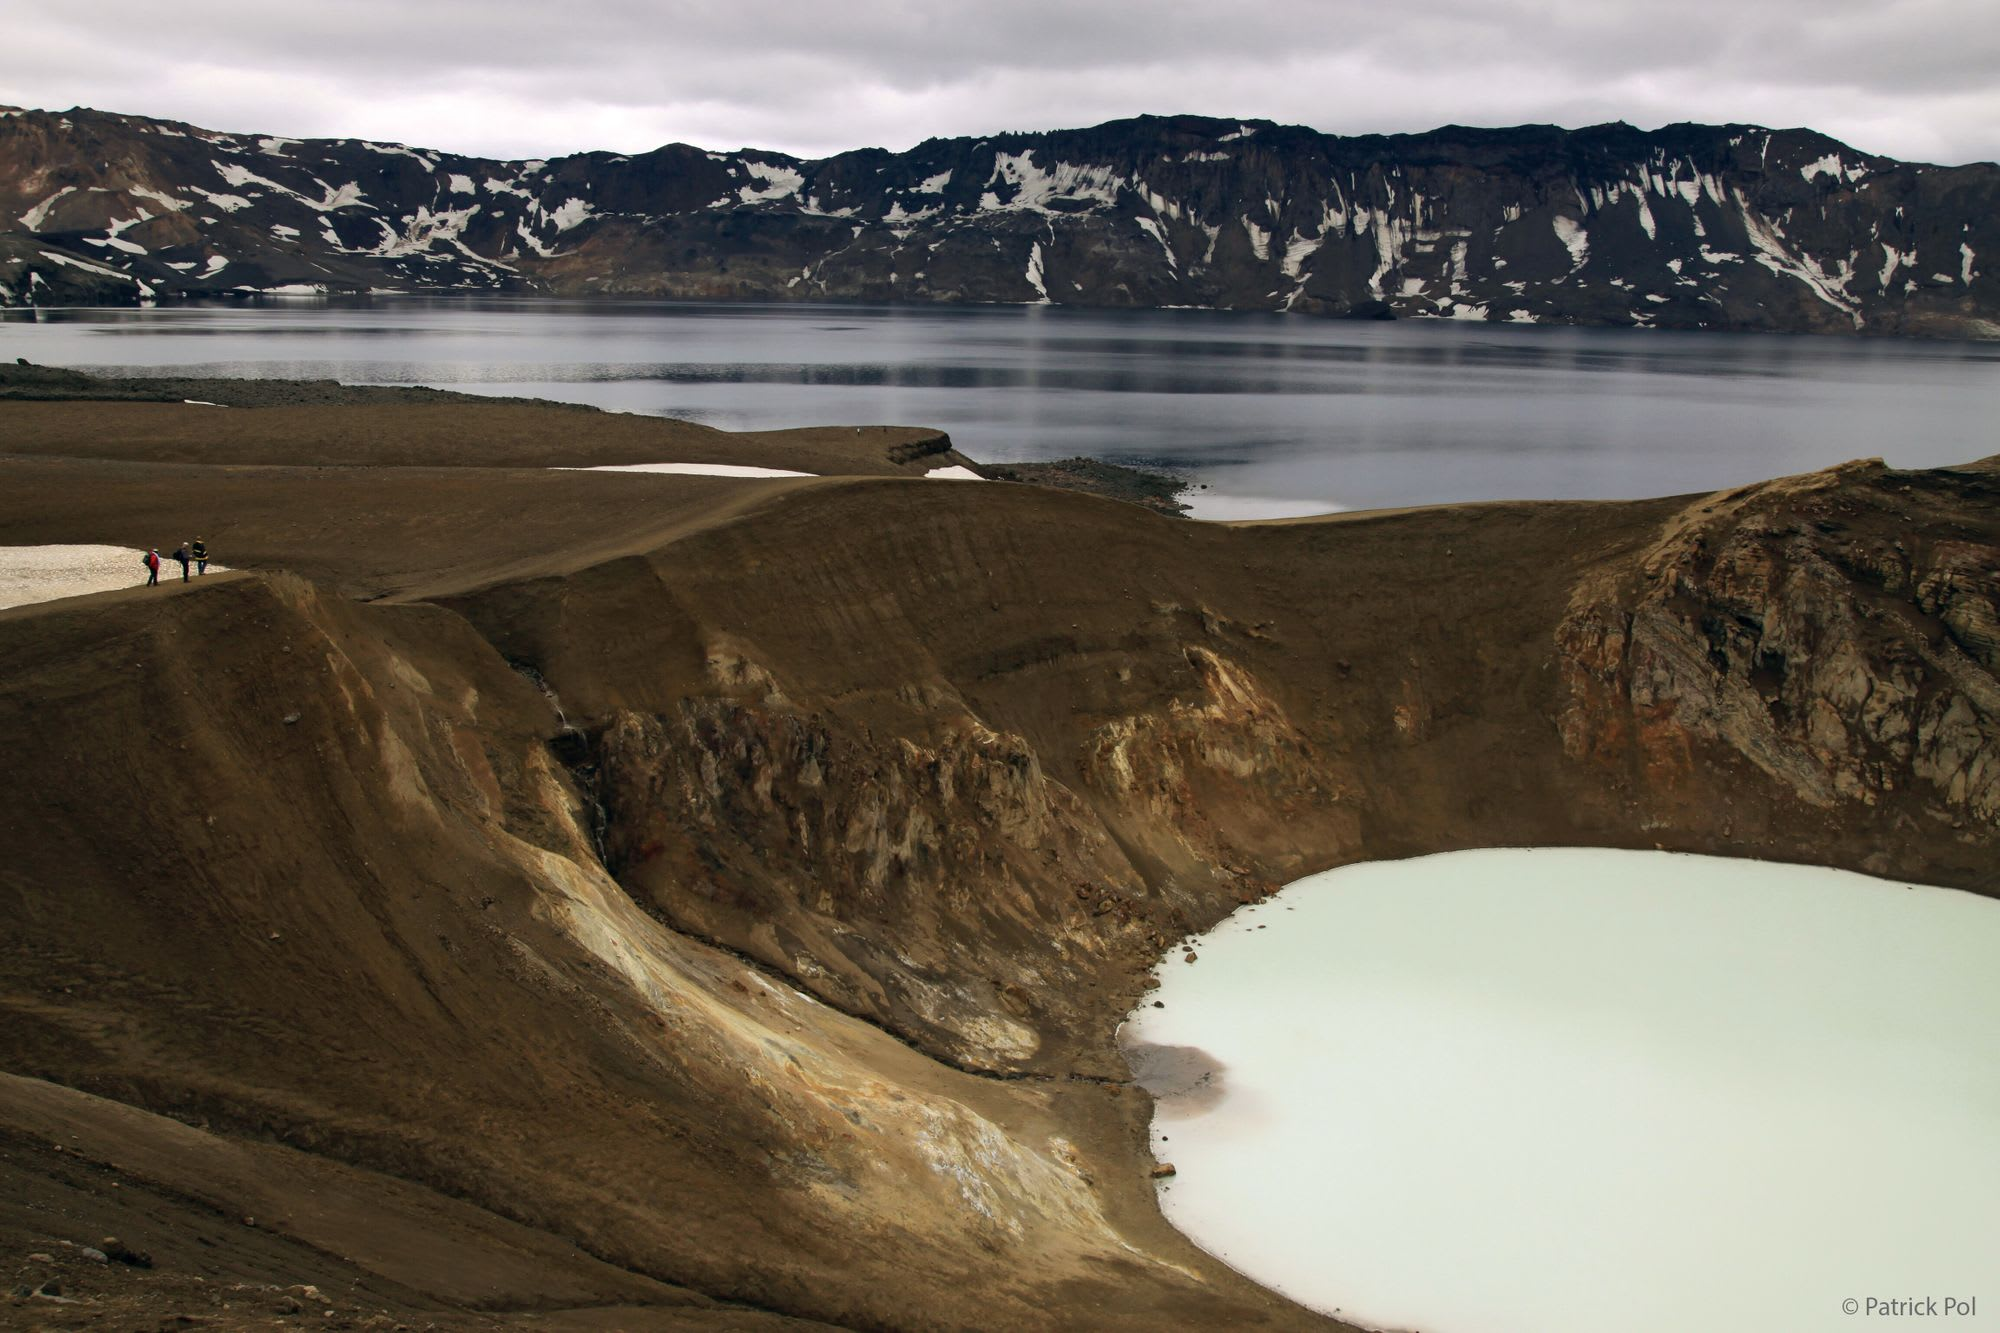 The Askja crater with on the foreground the Víti explosion crater, containing geothermal water